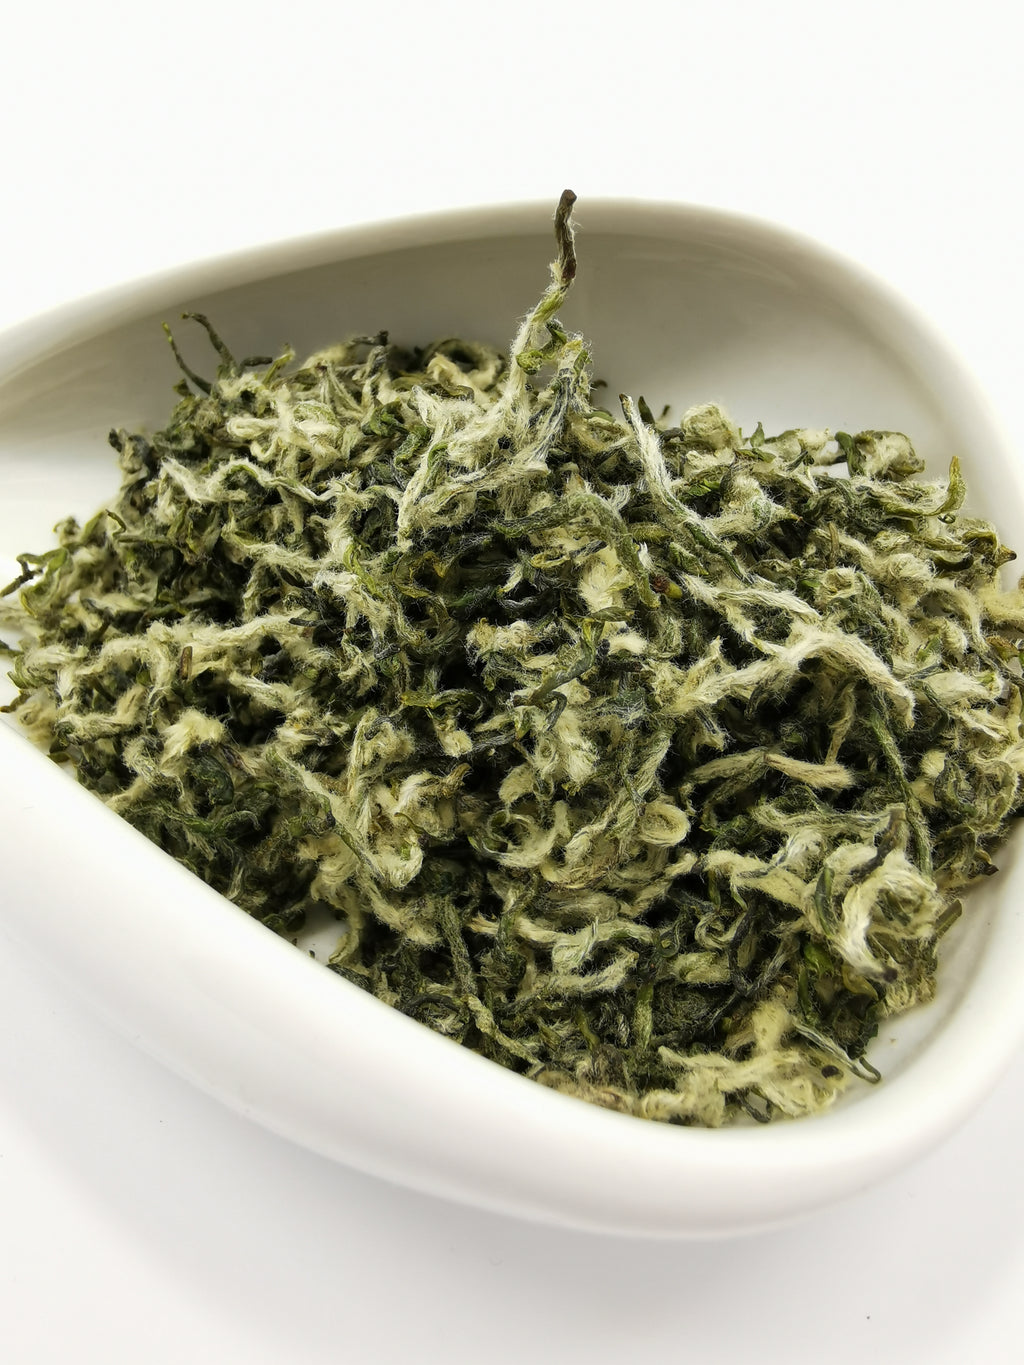 NEW 2021  Guizhou Maojian Wild Green Tea from 90-100 Year Old Single Buds Tea Trees